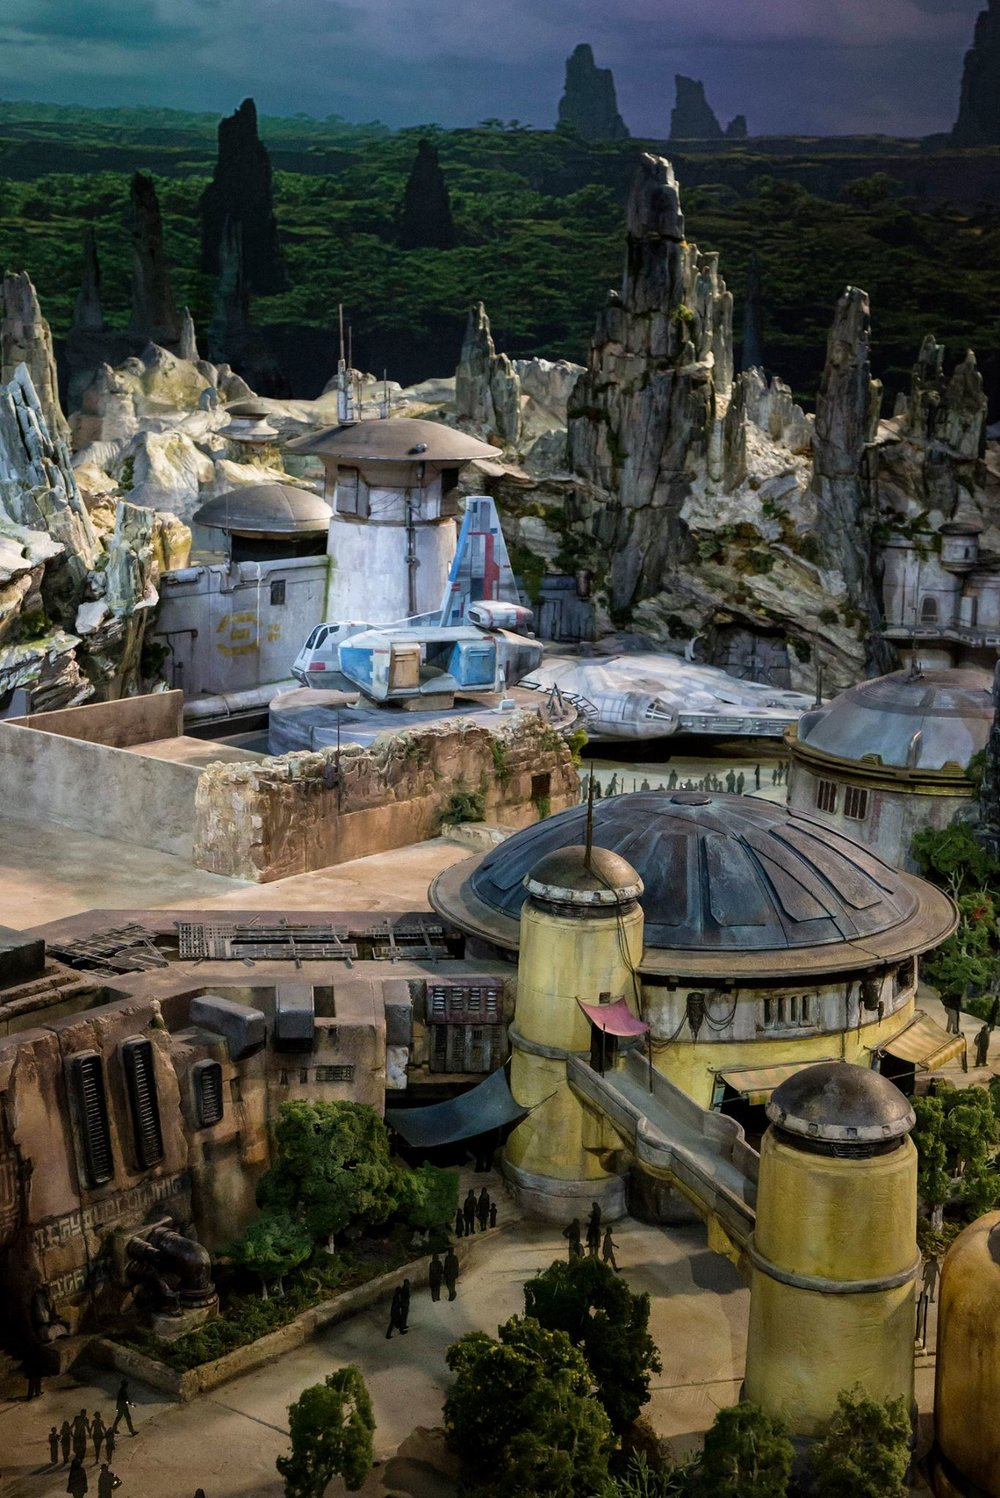 disney-reveals-incredibly-cool-full-star-wars-land-model-at-d23-expo3.jpeg